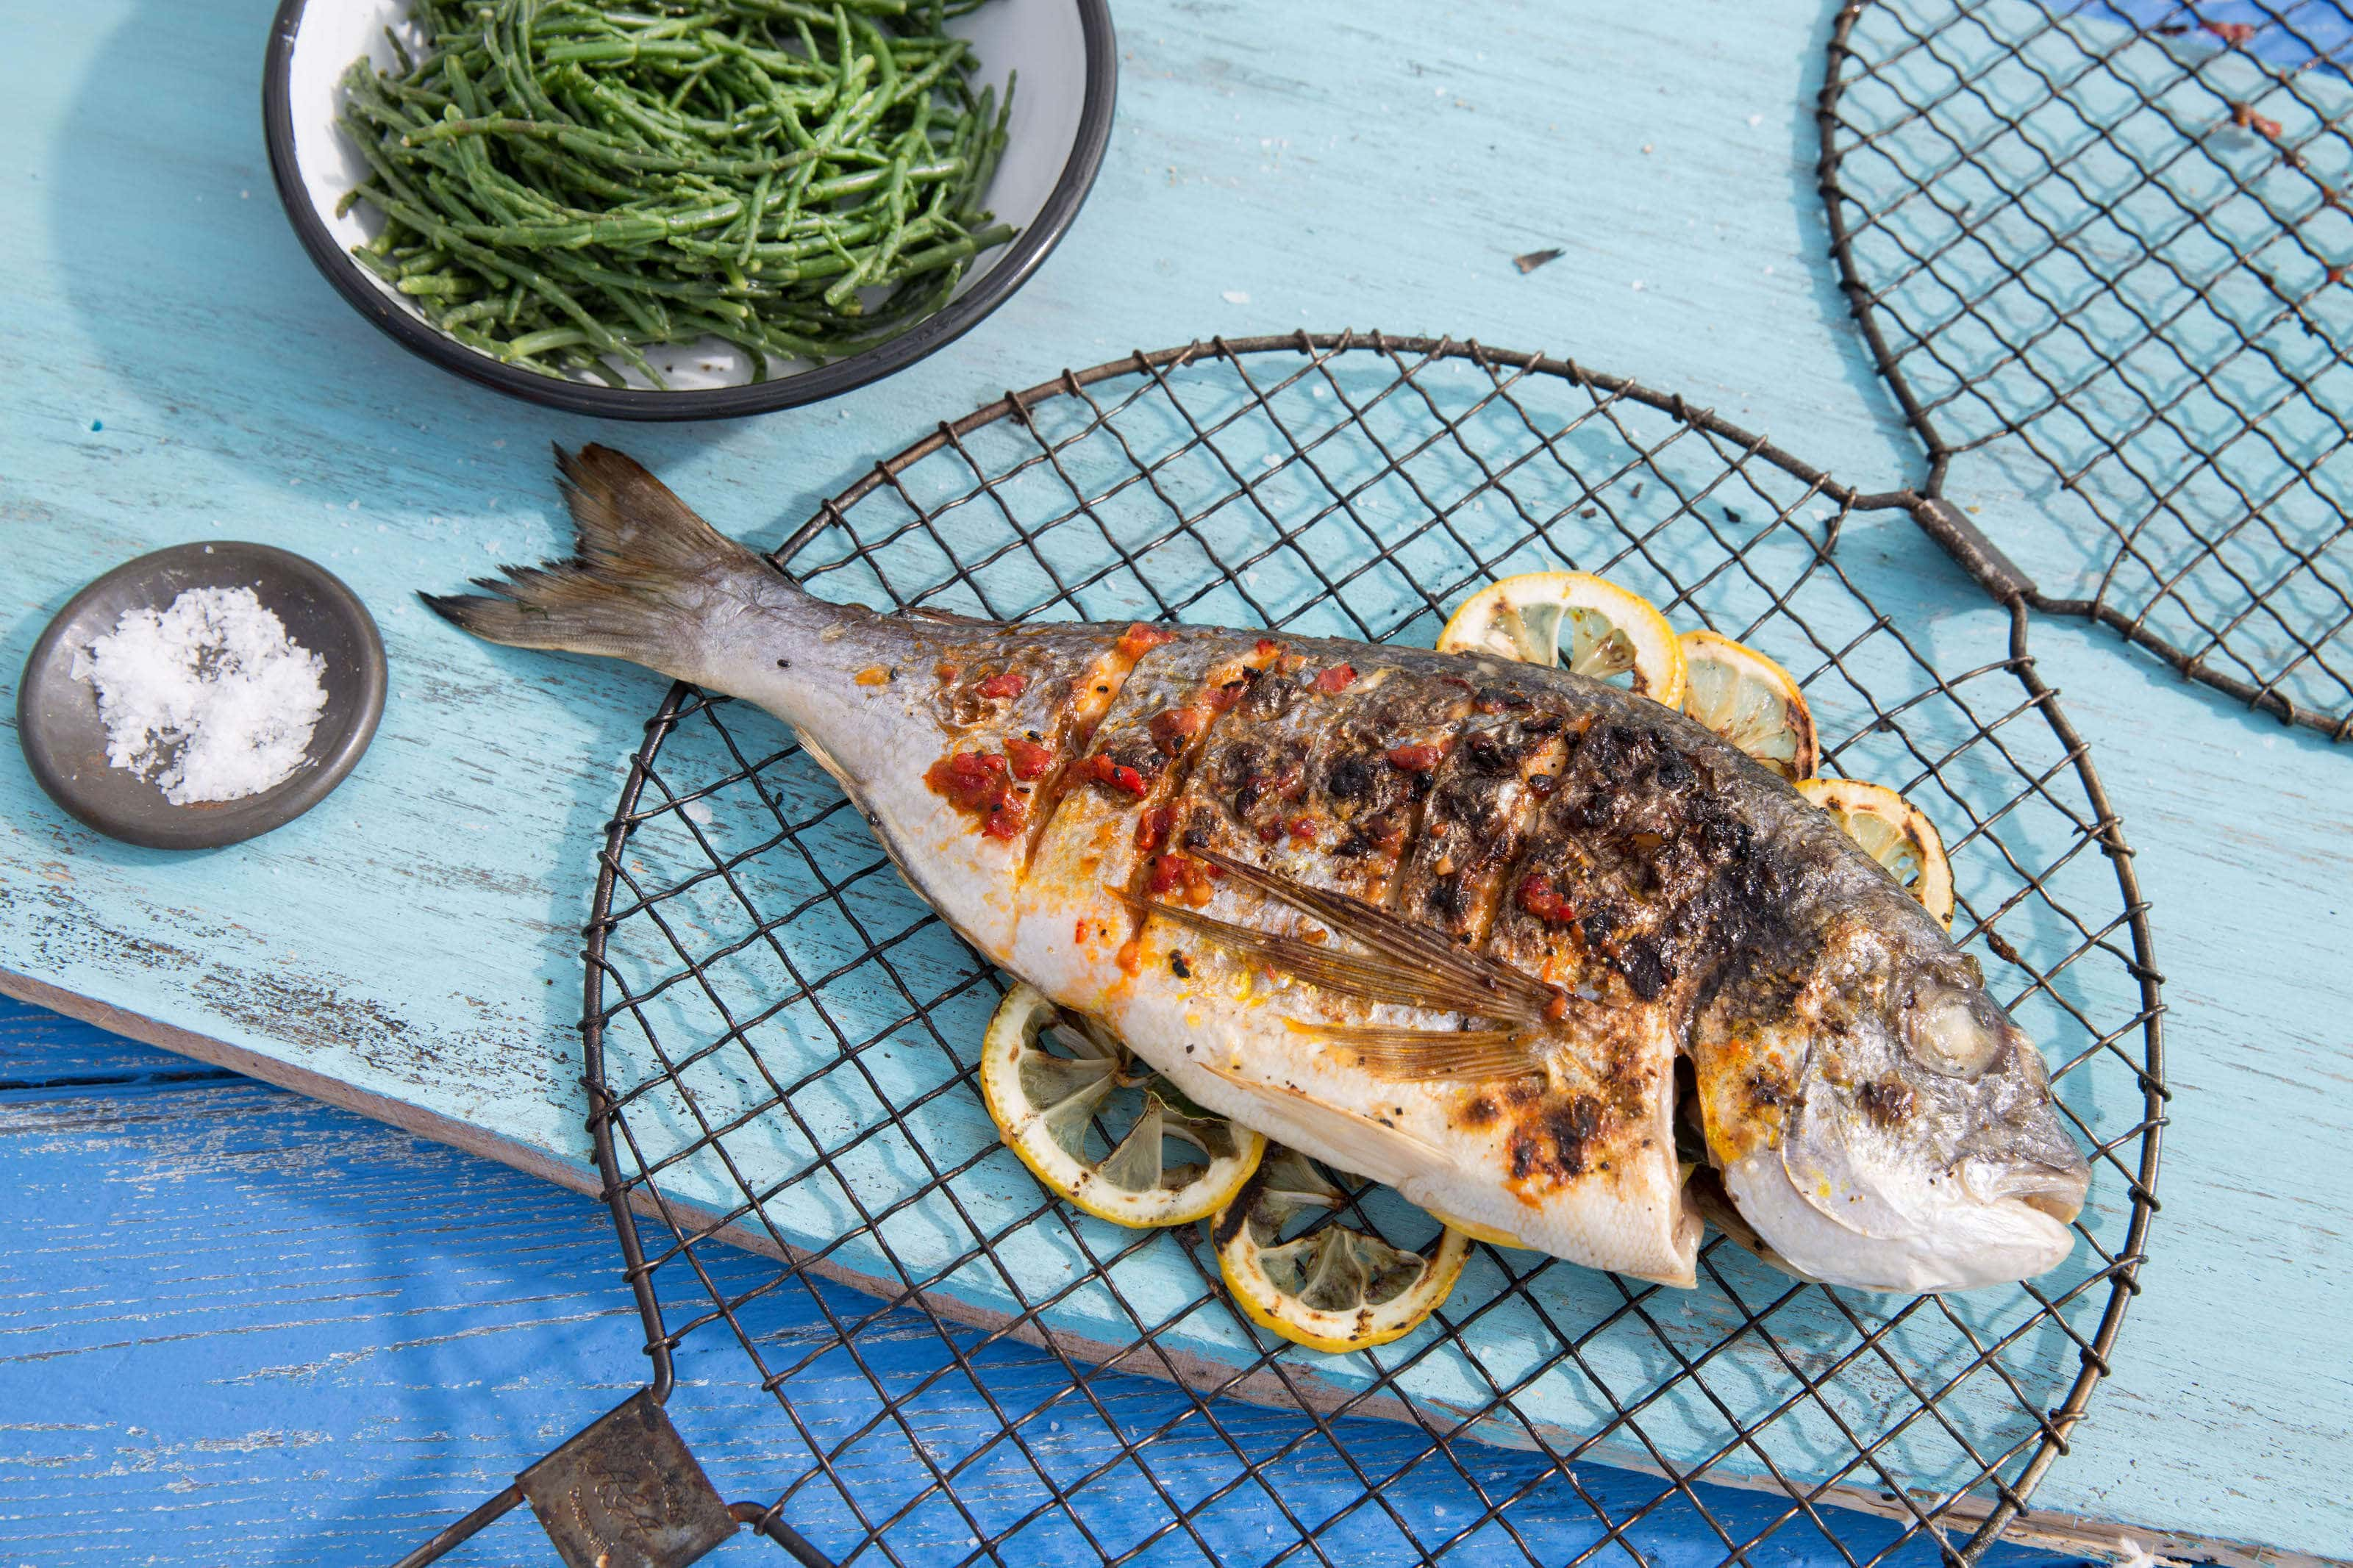 Cooked Sea bream on a turquoise table with salt and samphire.